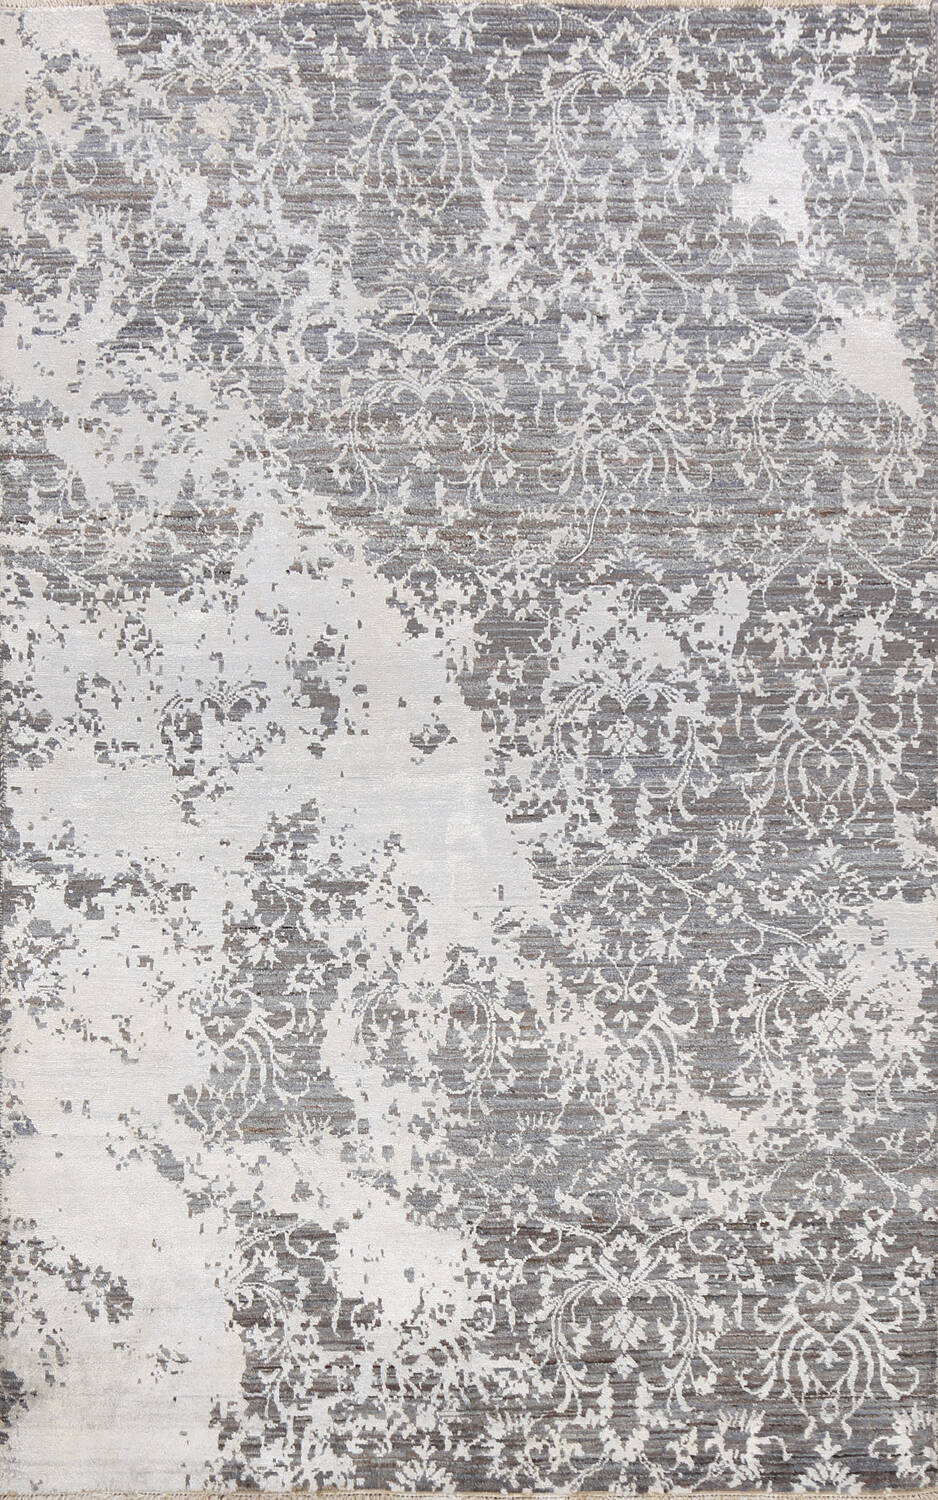 All-Over Distressed Art & Craft Oriental Area Rug 5x7 image 1